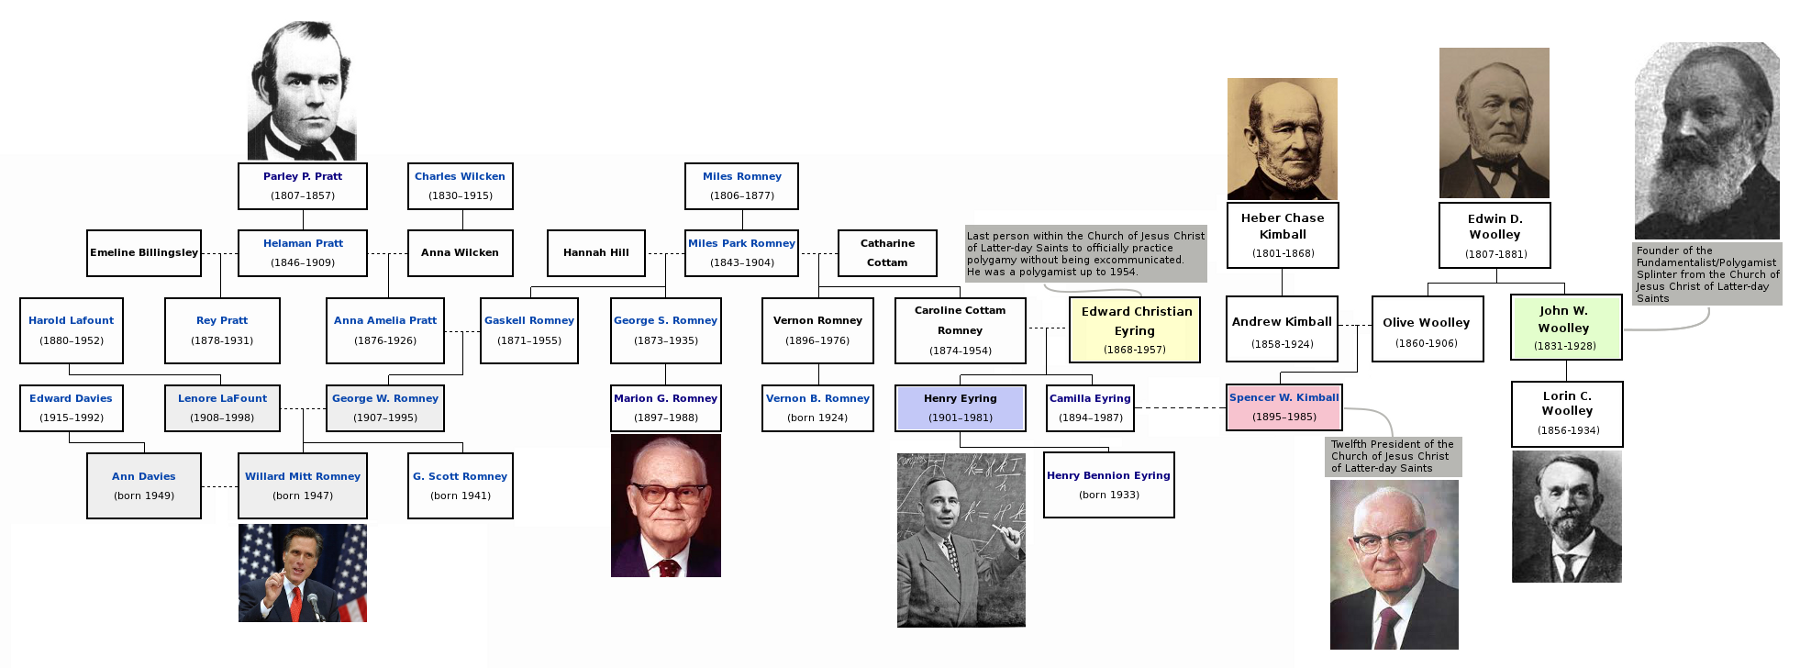 A chart of few cousins among the mormon elite: Pratt-Romney-Eyring-Kimball-Woolley